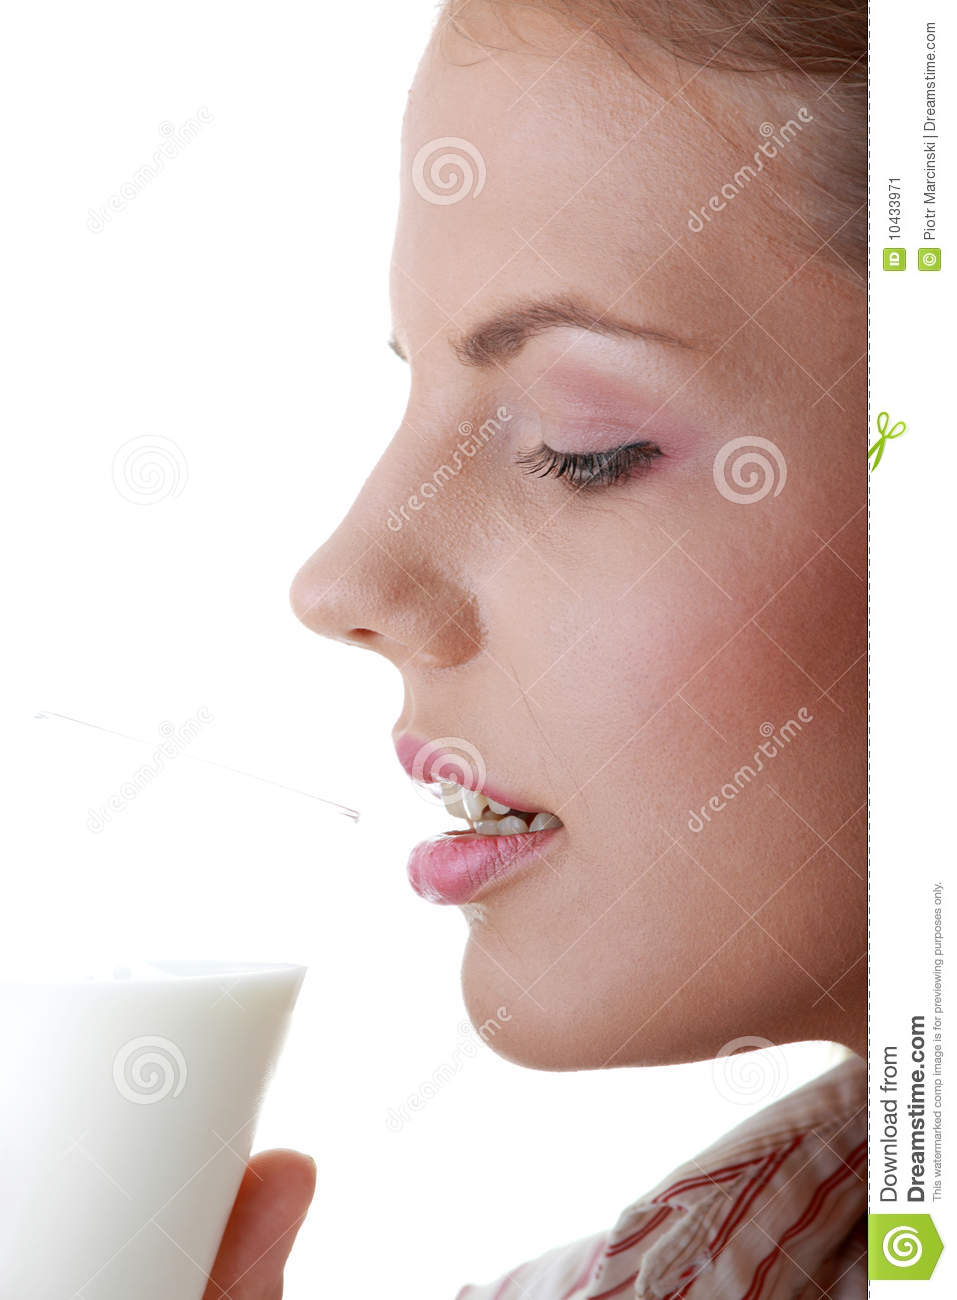 https://thumbs.dreamstime.com/z/young-happy-woman-drinking-milk-10433971.jpg